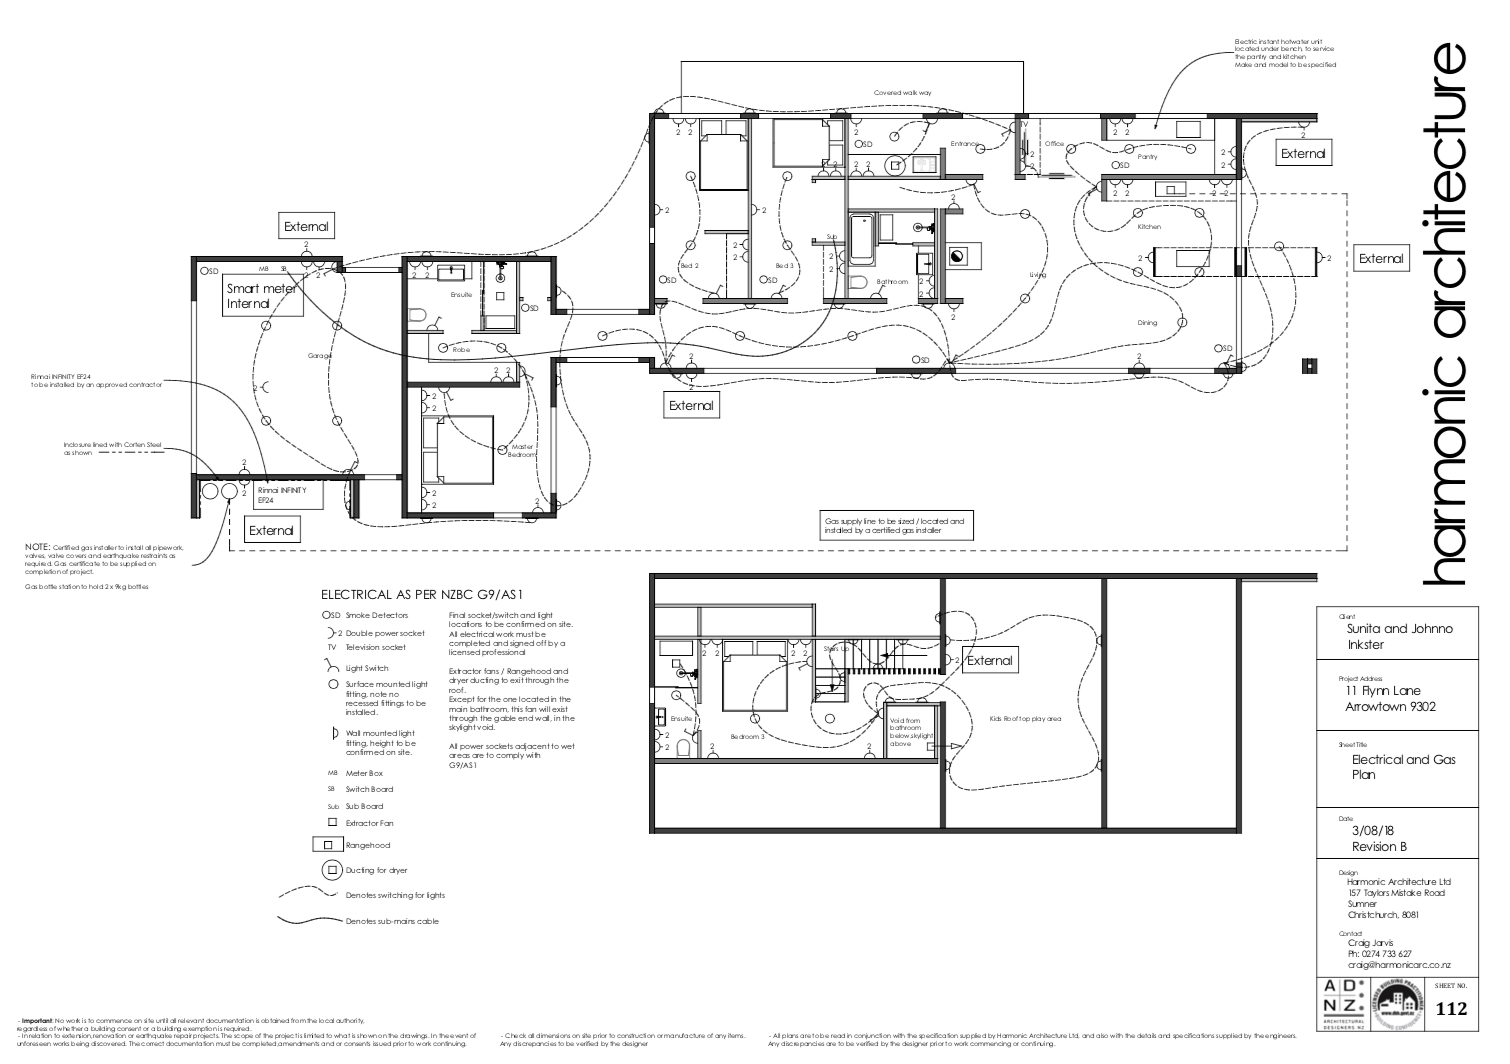 Electrical and Gas Plan Energy Efficient Home